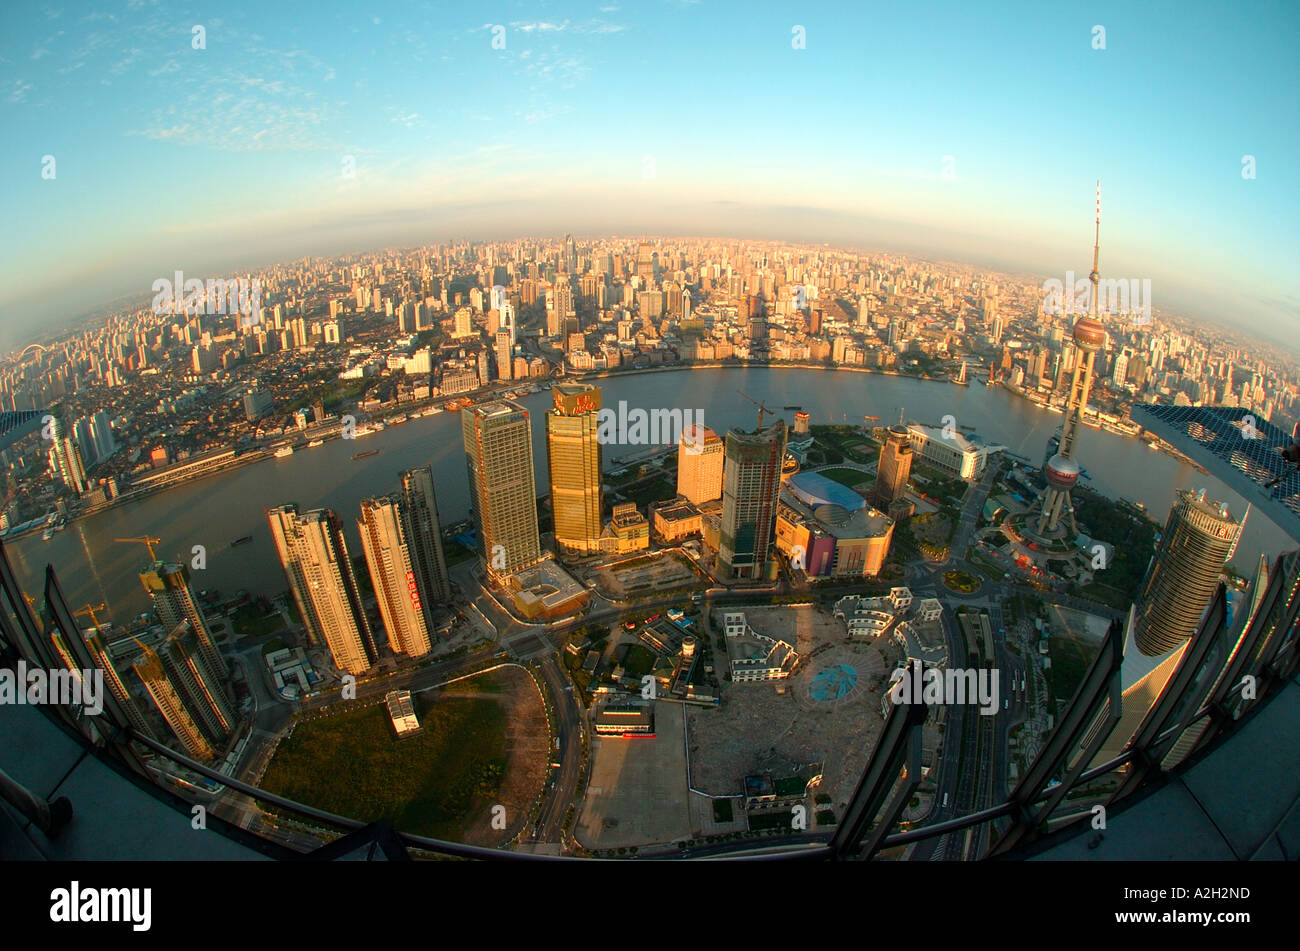 View of Shanghai in China from the Jin Mao tower at sunrise with a fisheye - Stock Image